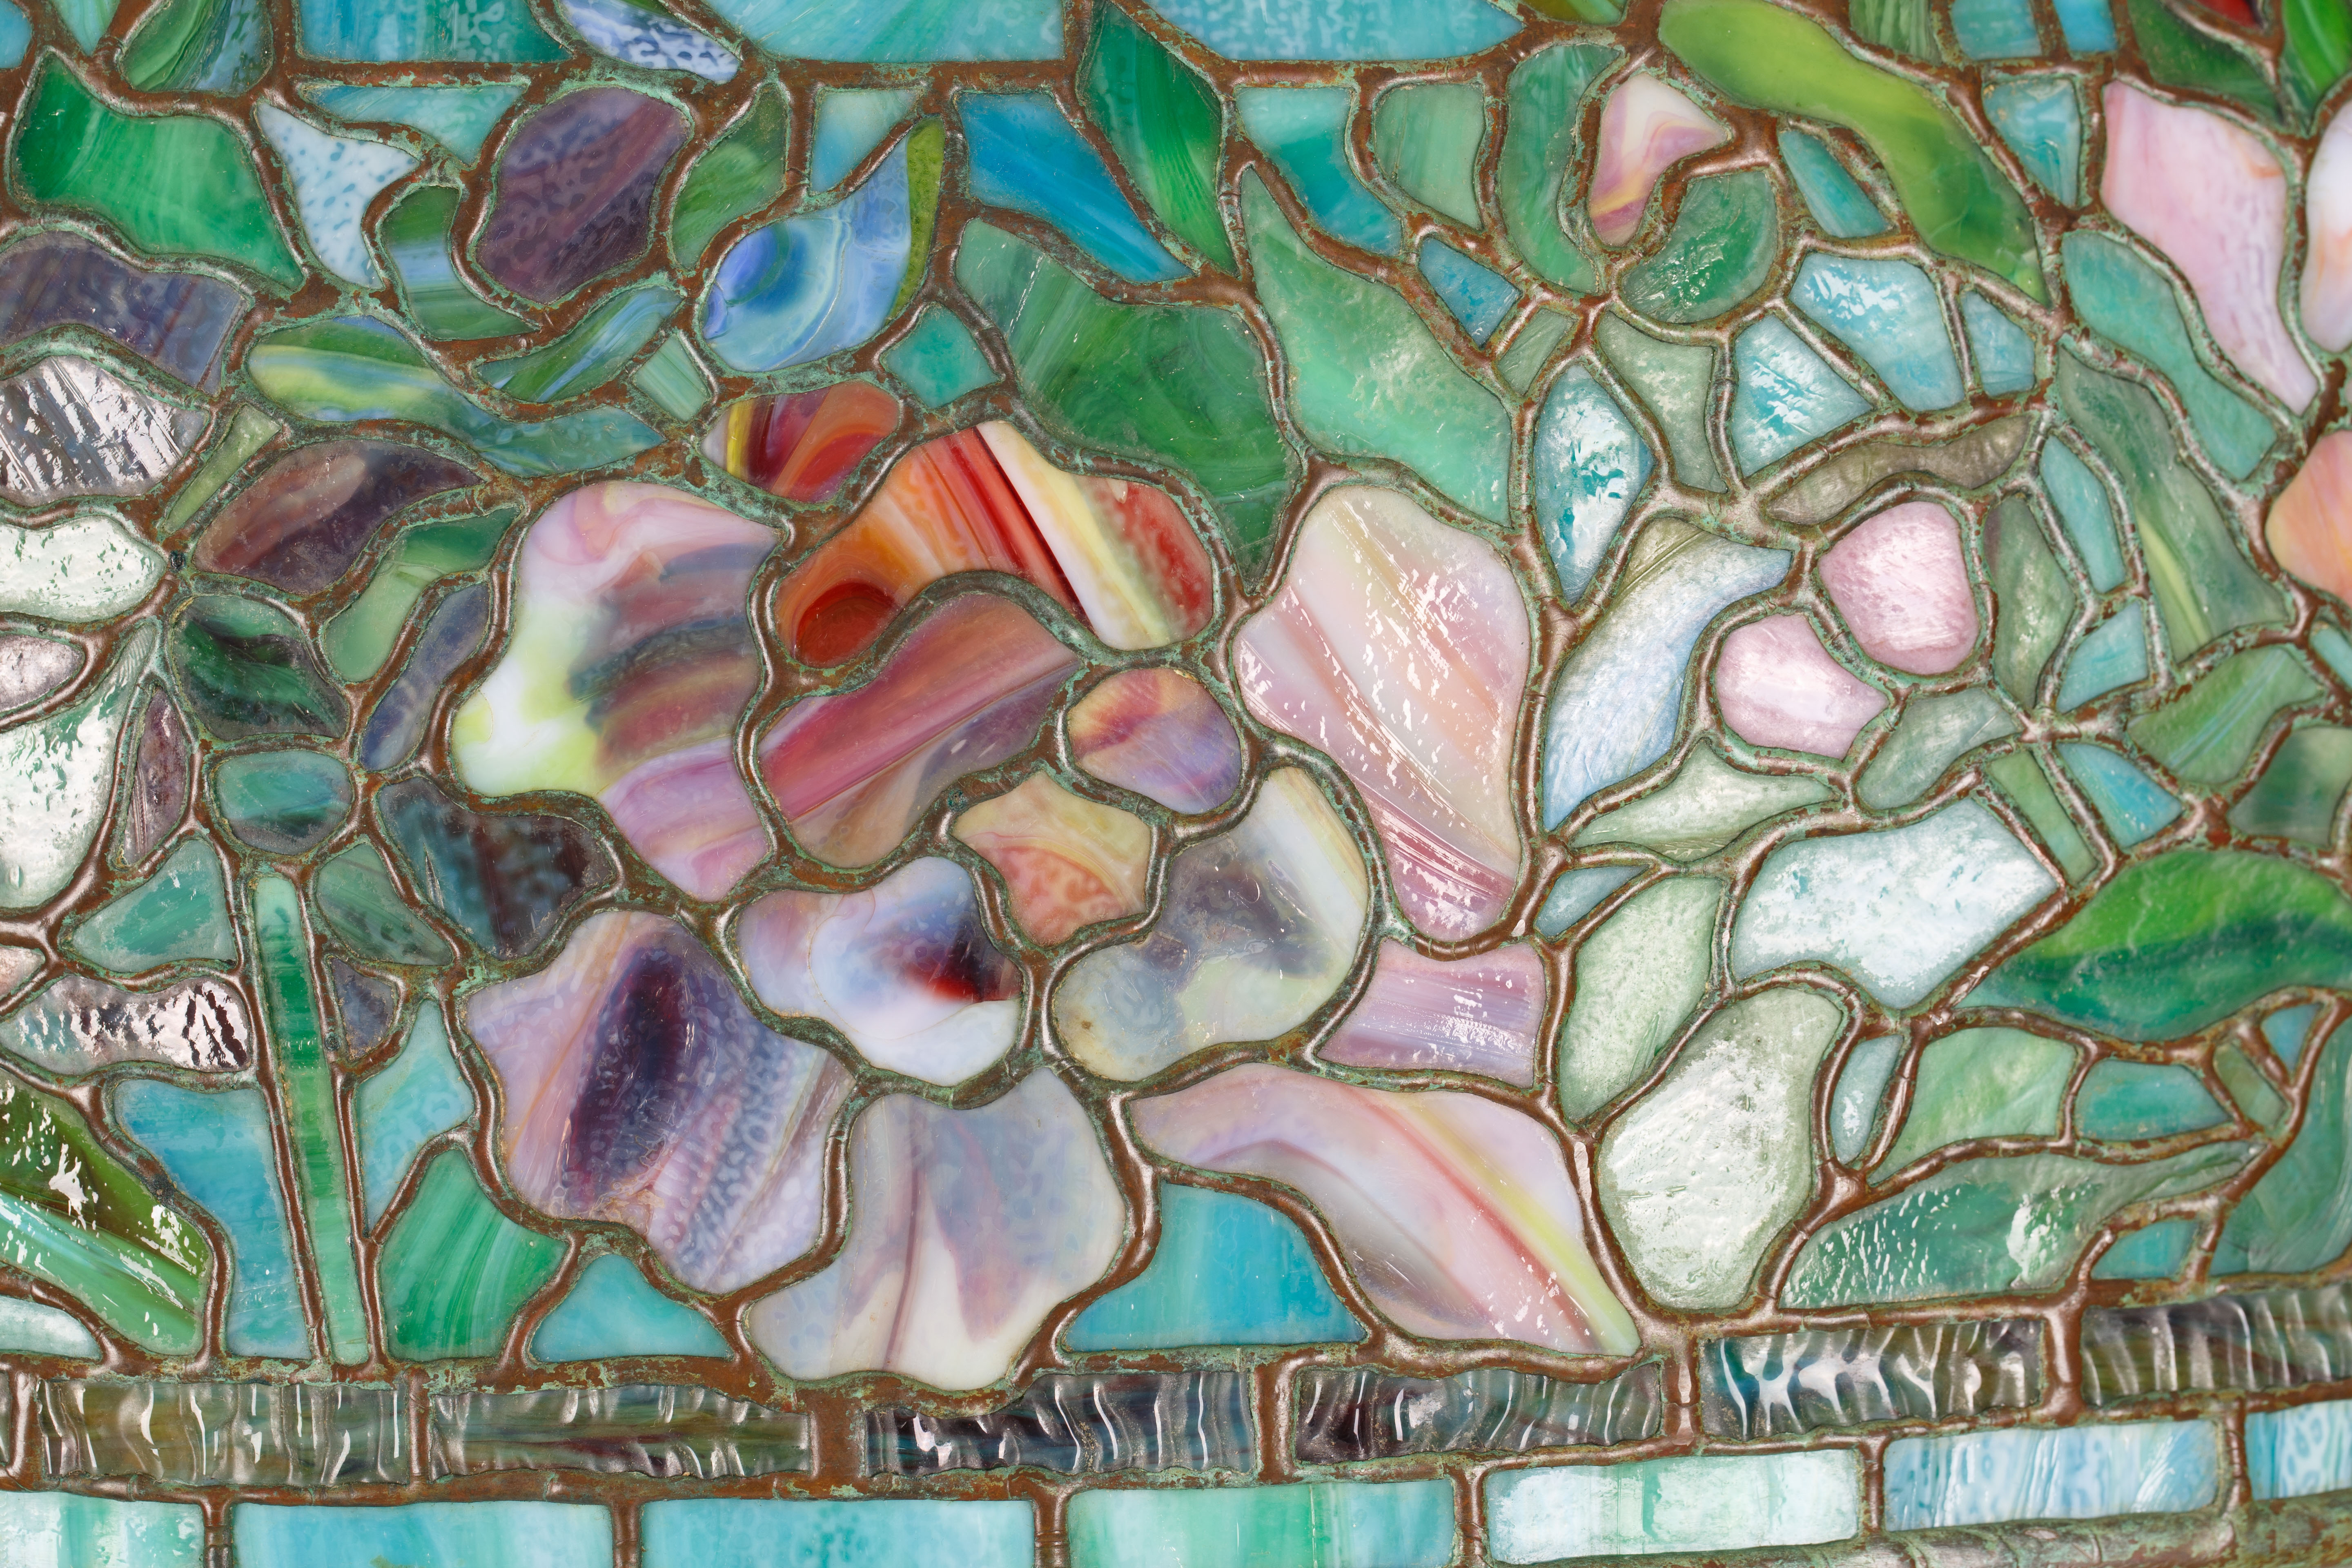 A MODERN TIFFANY & CO. STYLE STAINED GLASS 'PEONY' FLOOR LAMP - Image 2 of 5